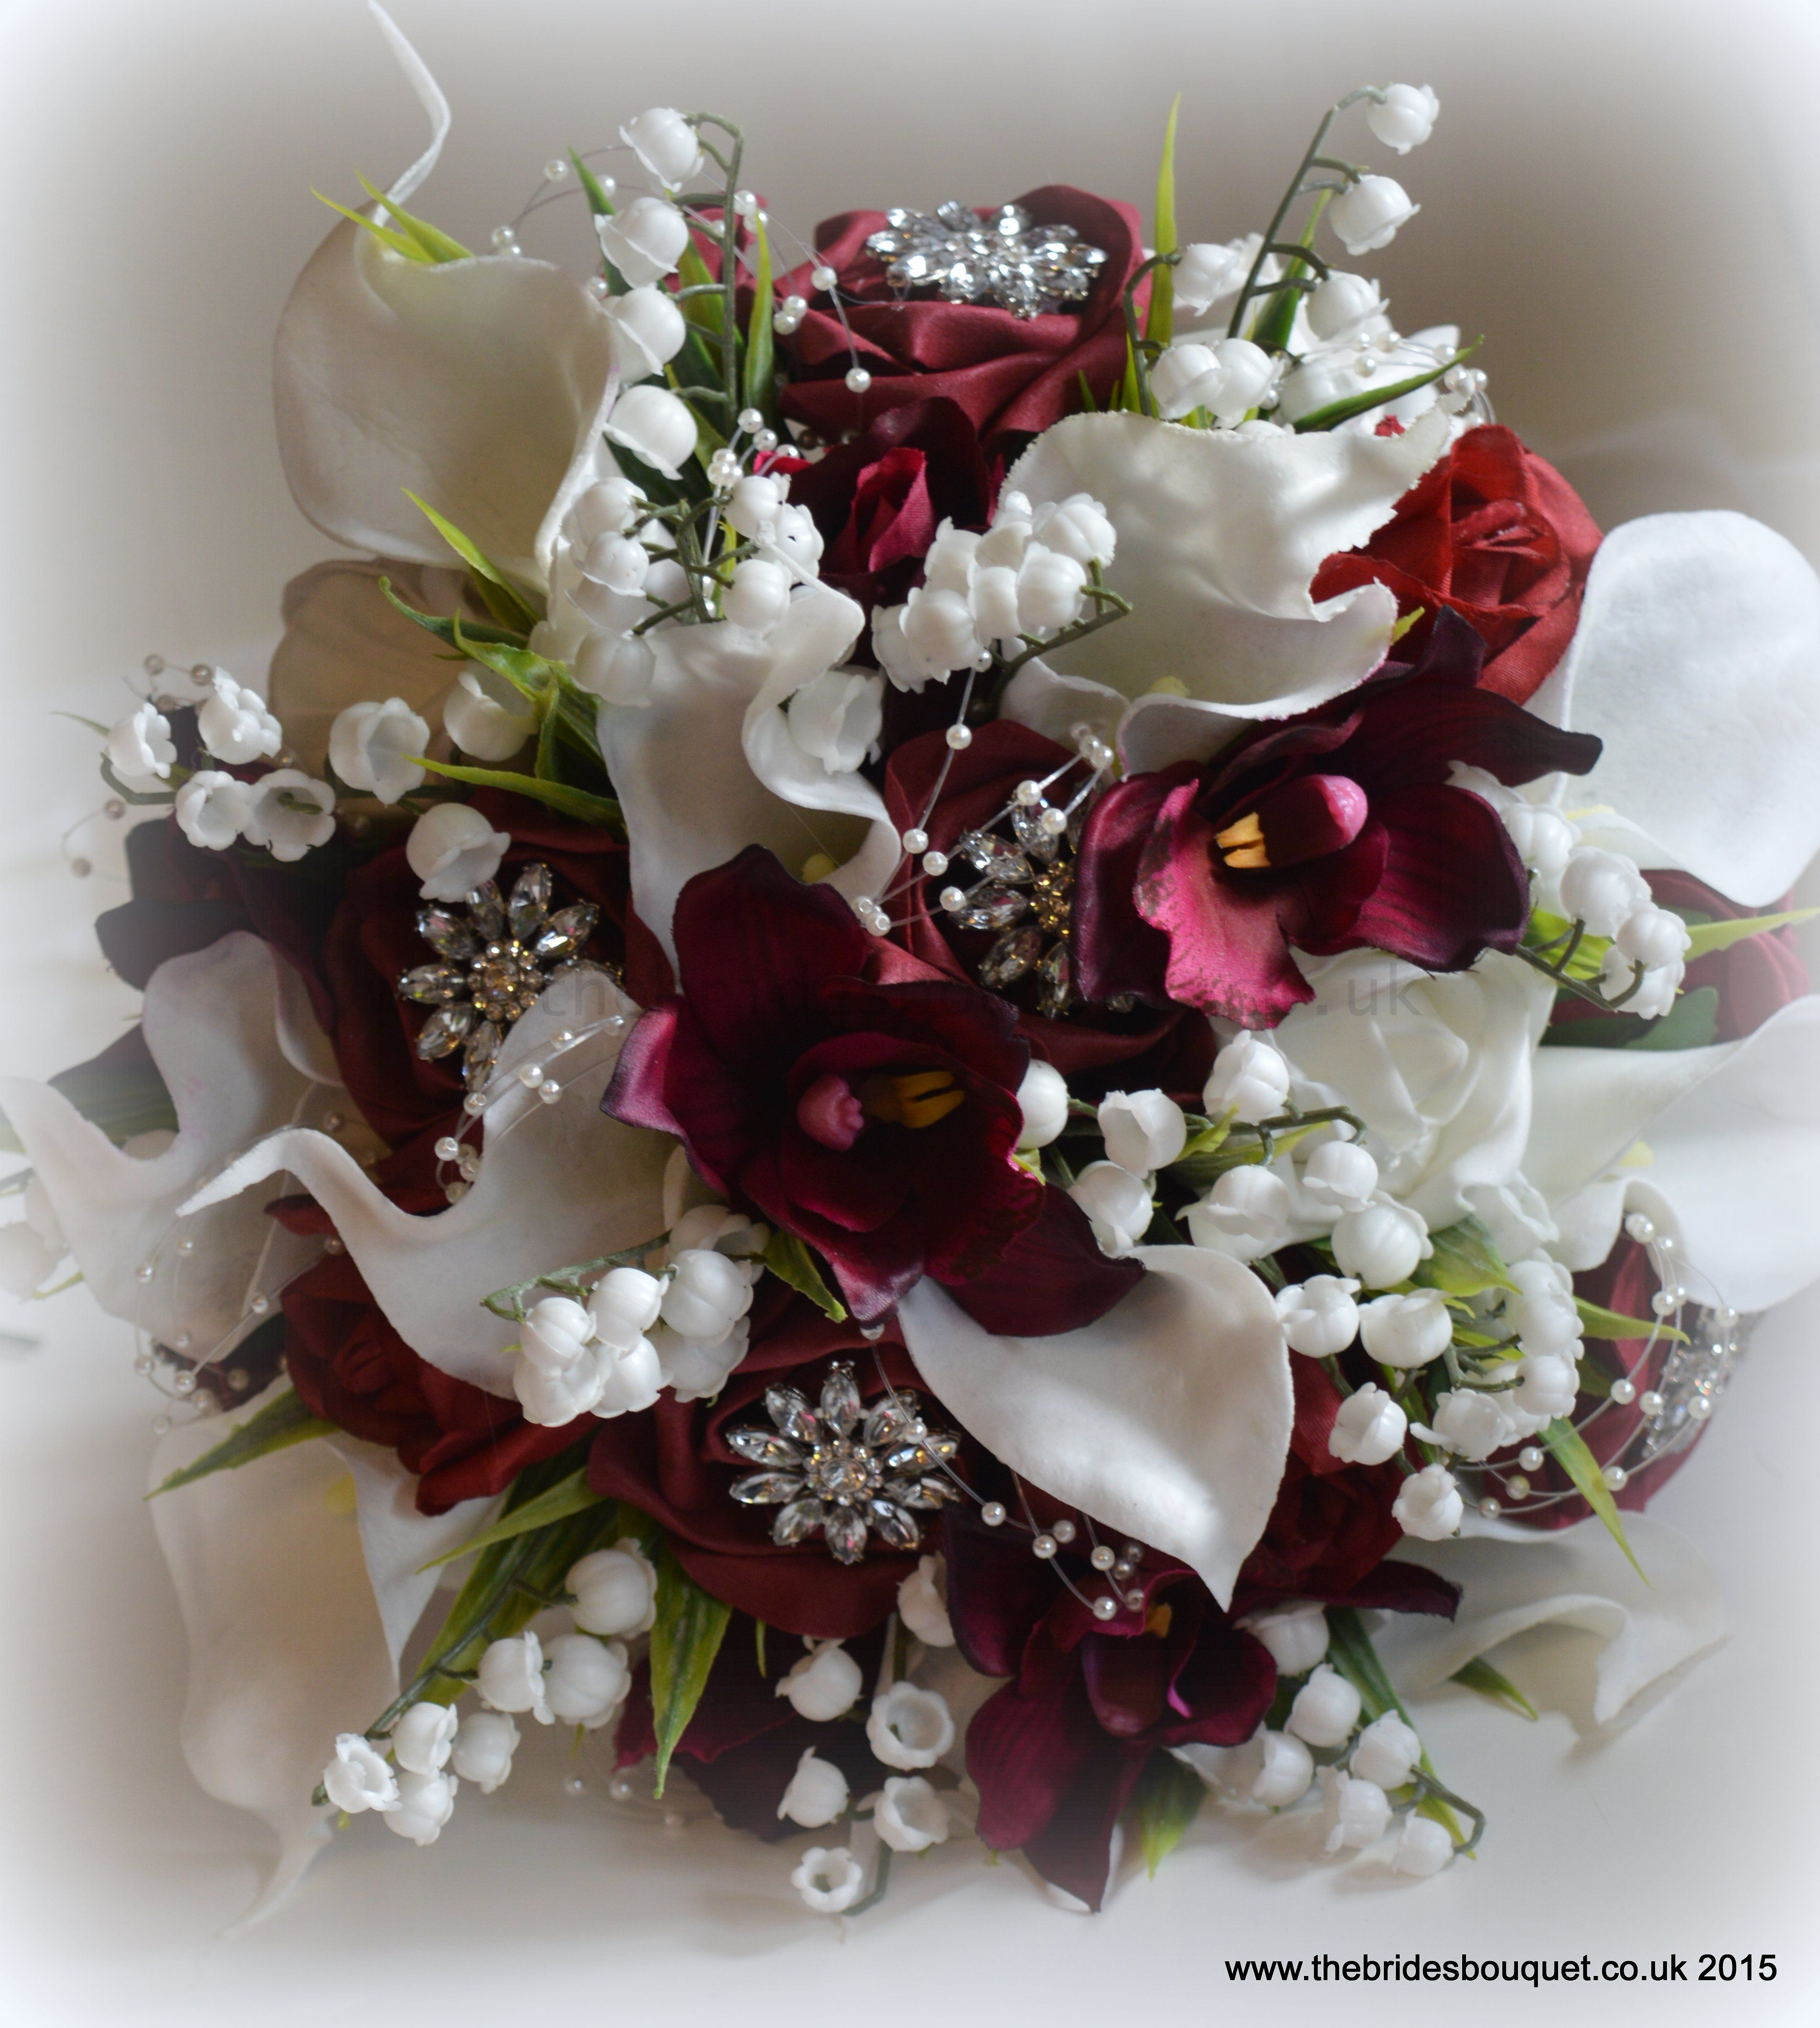 Lily Of The Valley Wedding Flowers: Burgundy And White Unique Bridal Bouquet Of Rose, Orchid